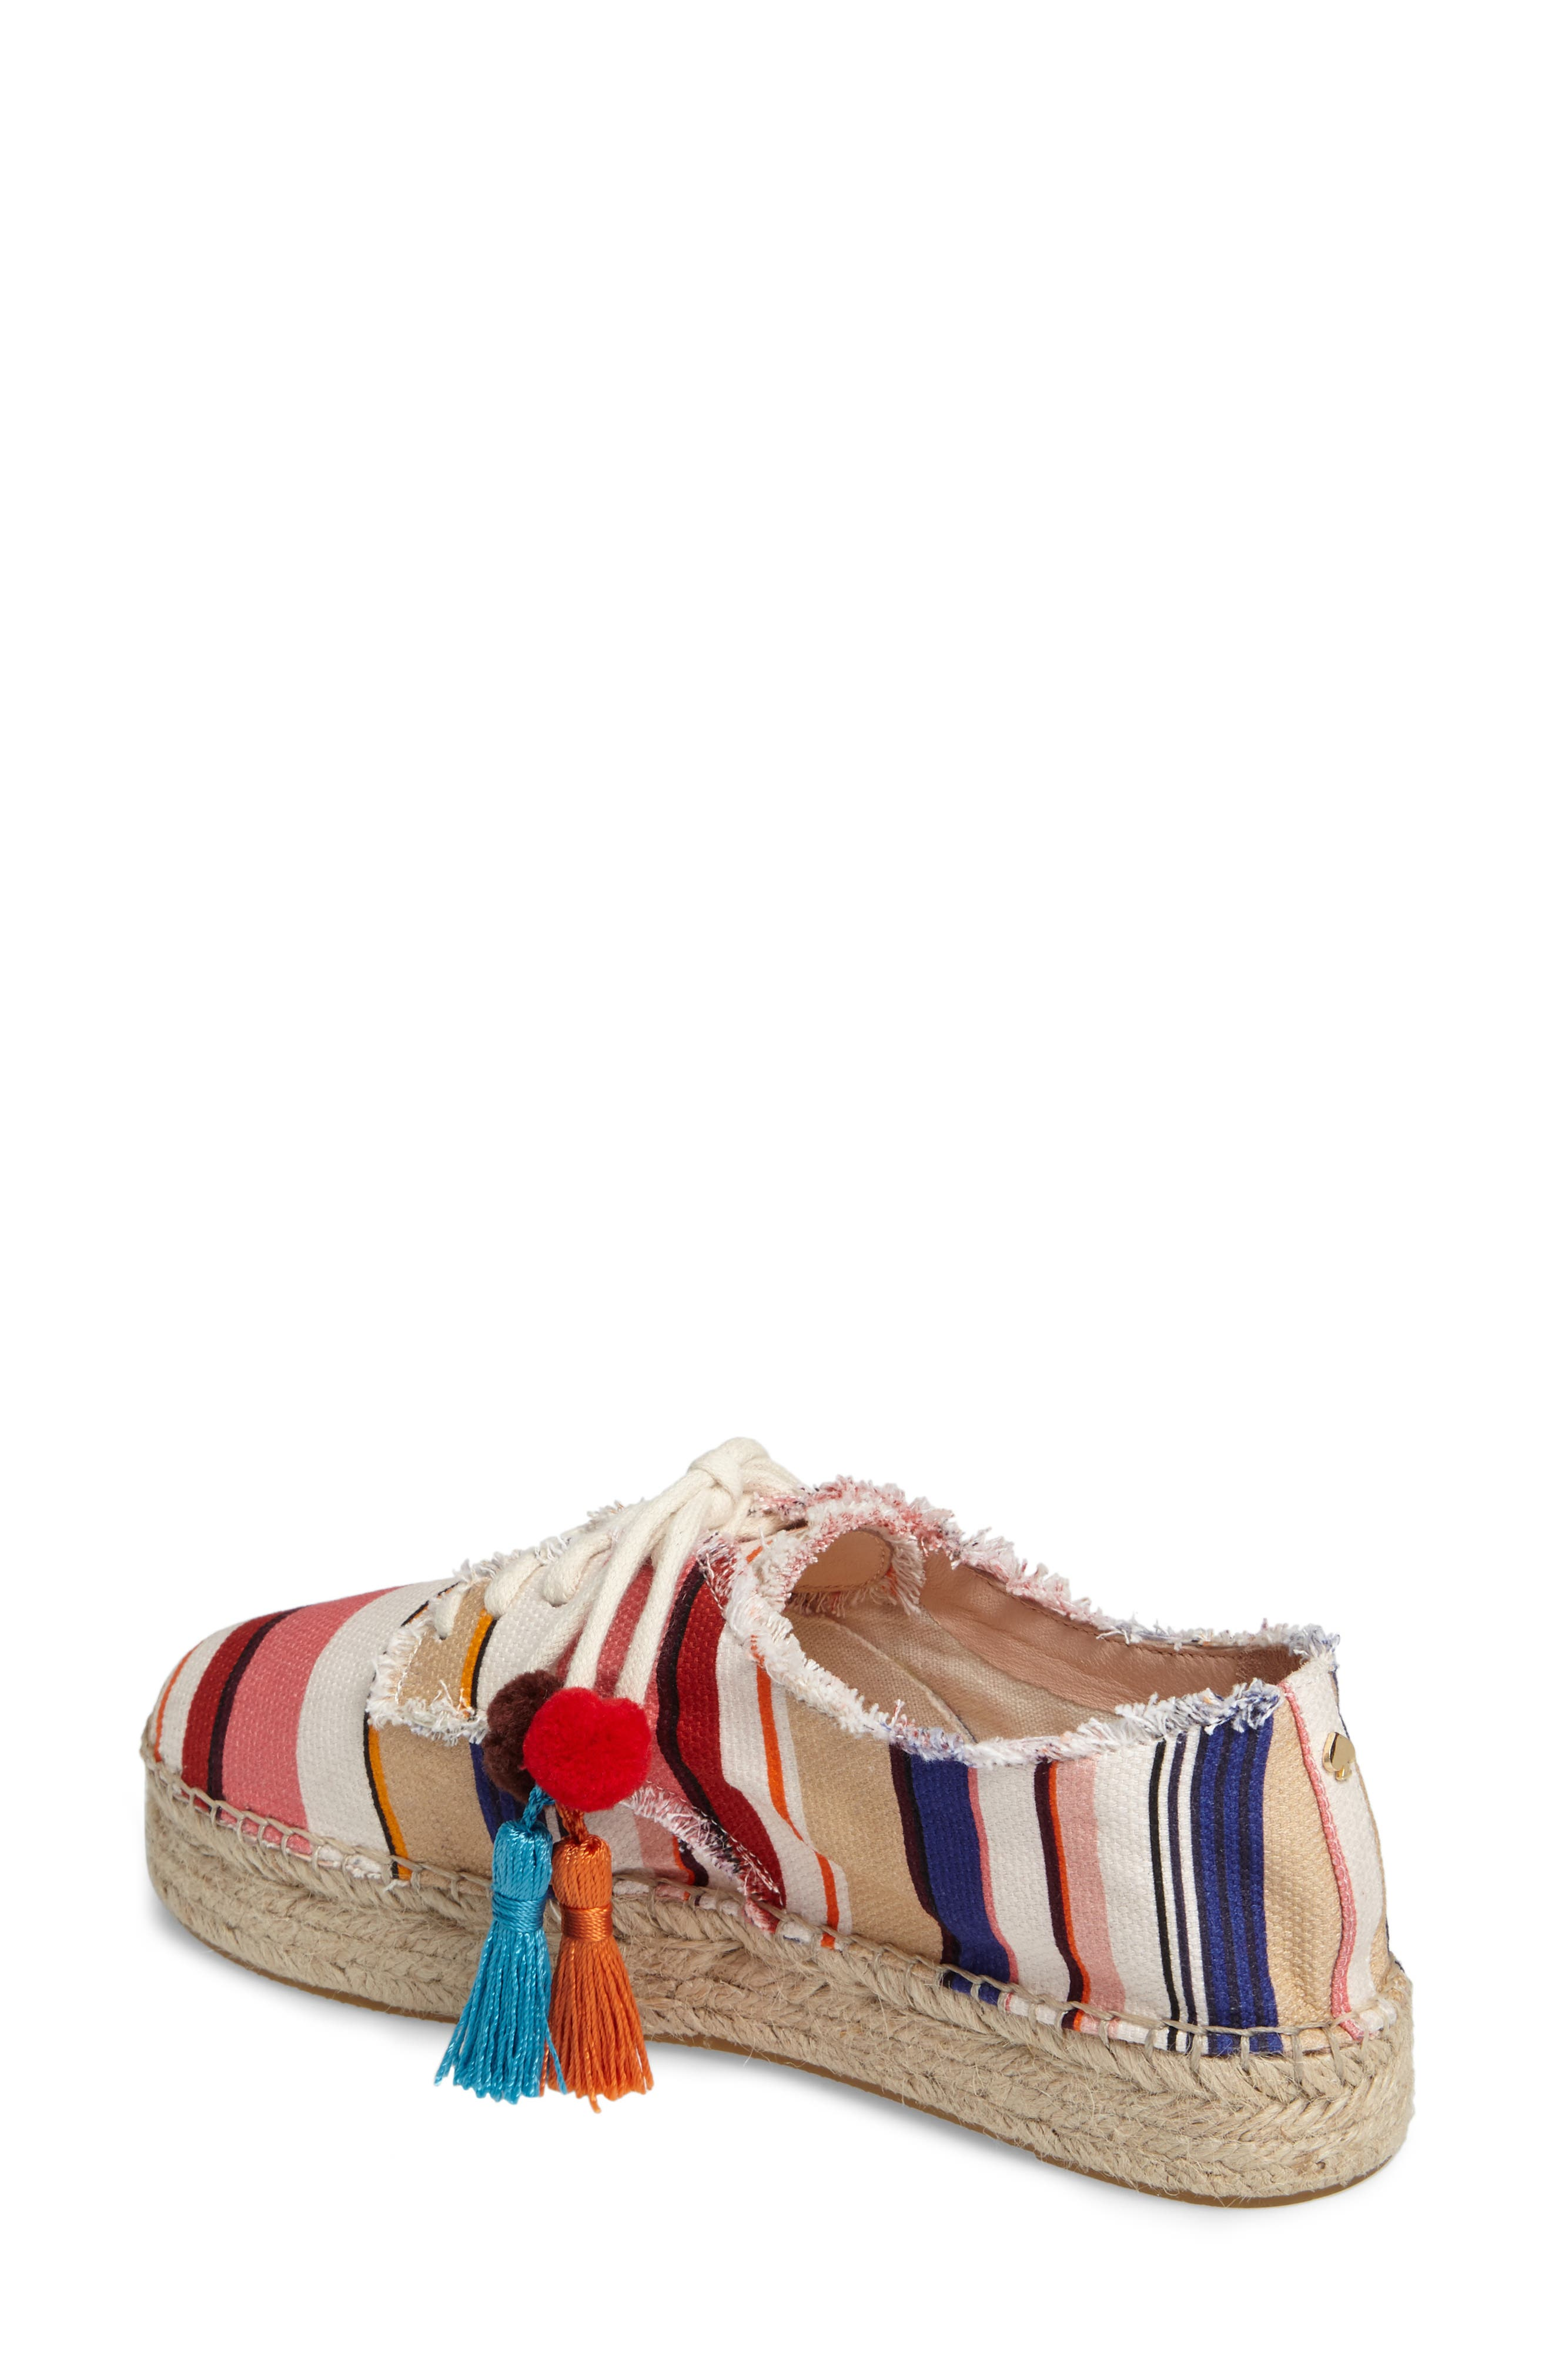 Alternate Image 2  - kate spade new york lane espadrille platform sneaker (Women)